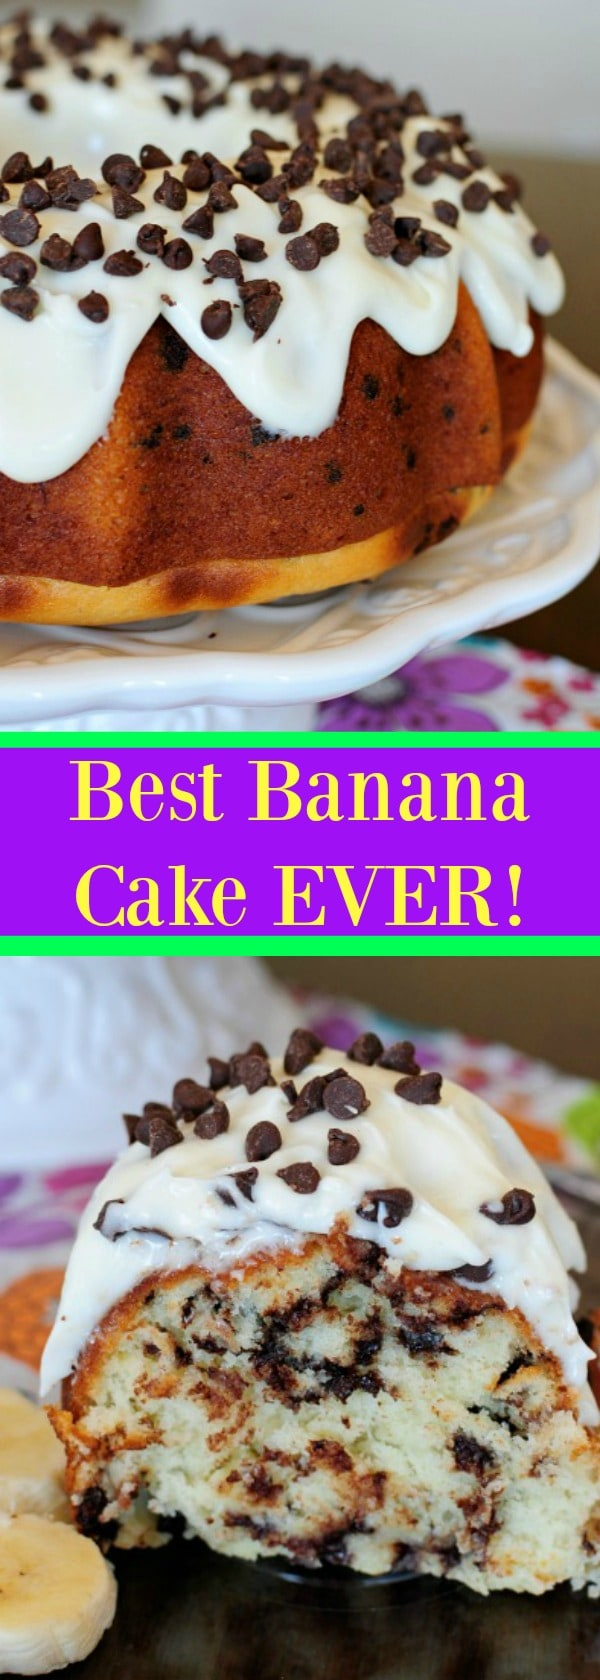 Best Banana Cake EVER!